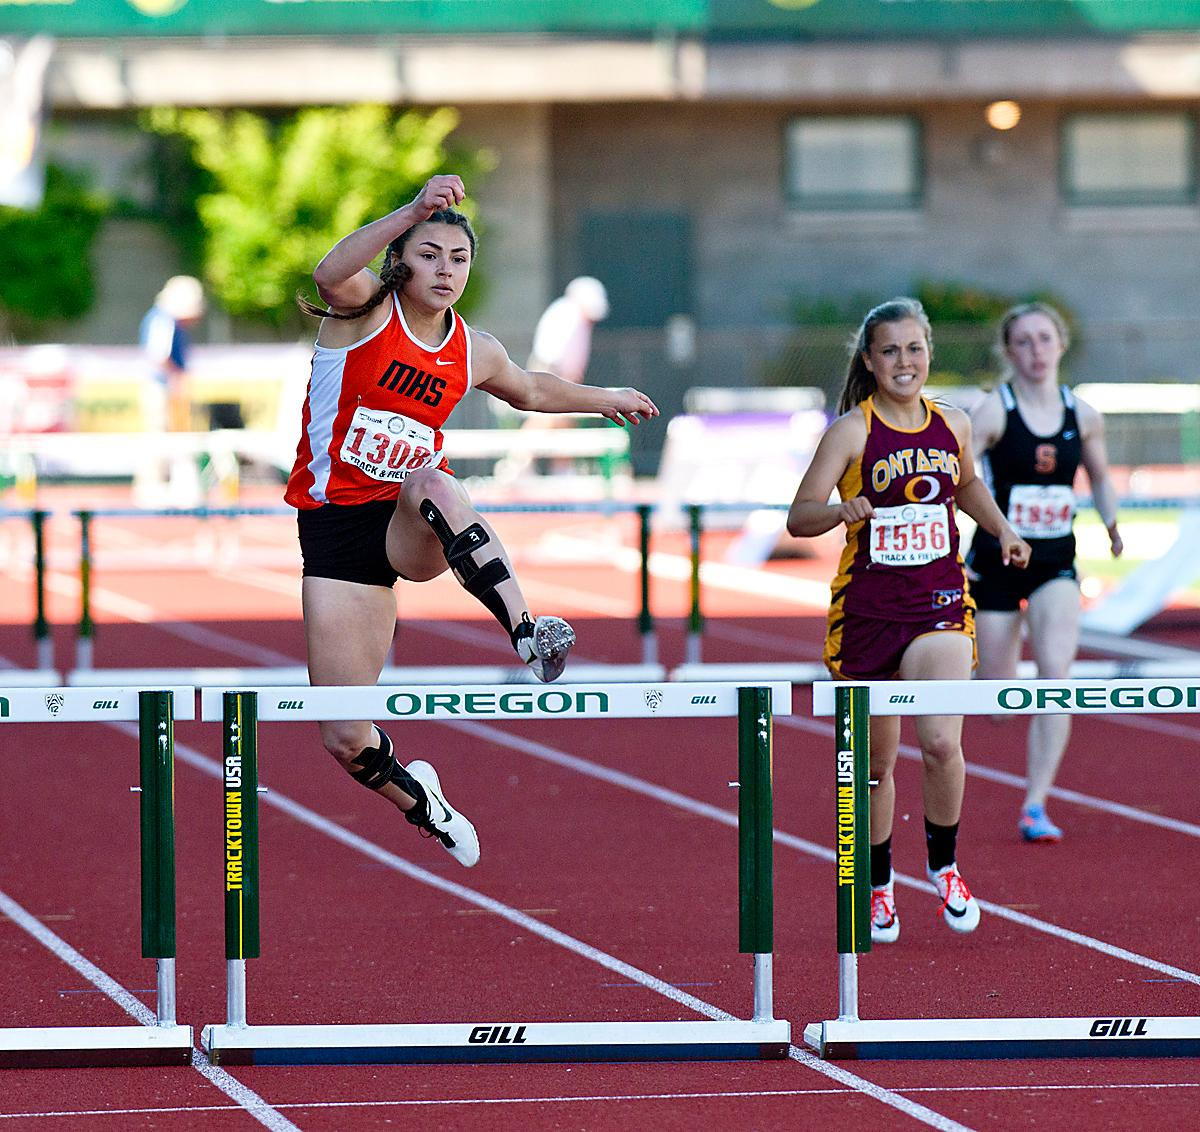 Desirae DesRosiers from Molalla wins the 4A Girls 300 Low Hurdles with a time of 45.70 at the OSAA Championship at Hayward Field on Saturday. Photo by Dan Morrison, Oregon News Lab